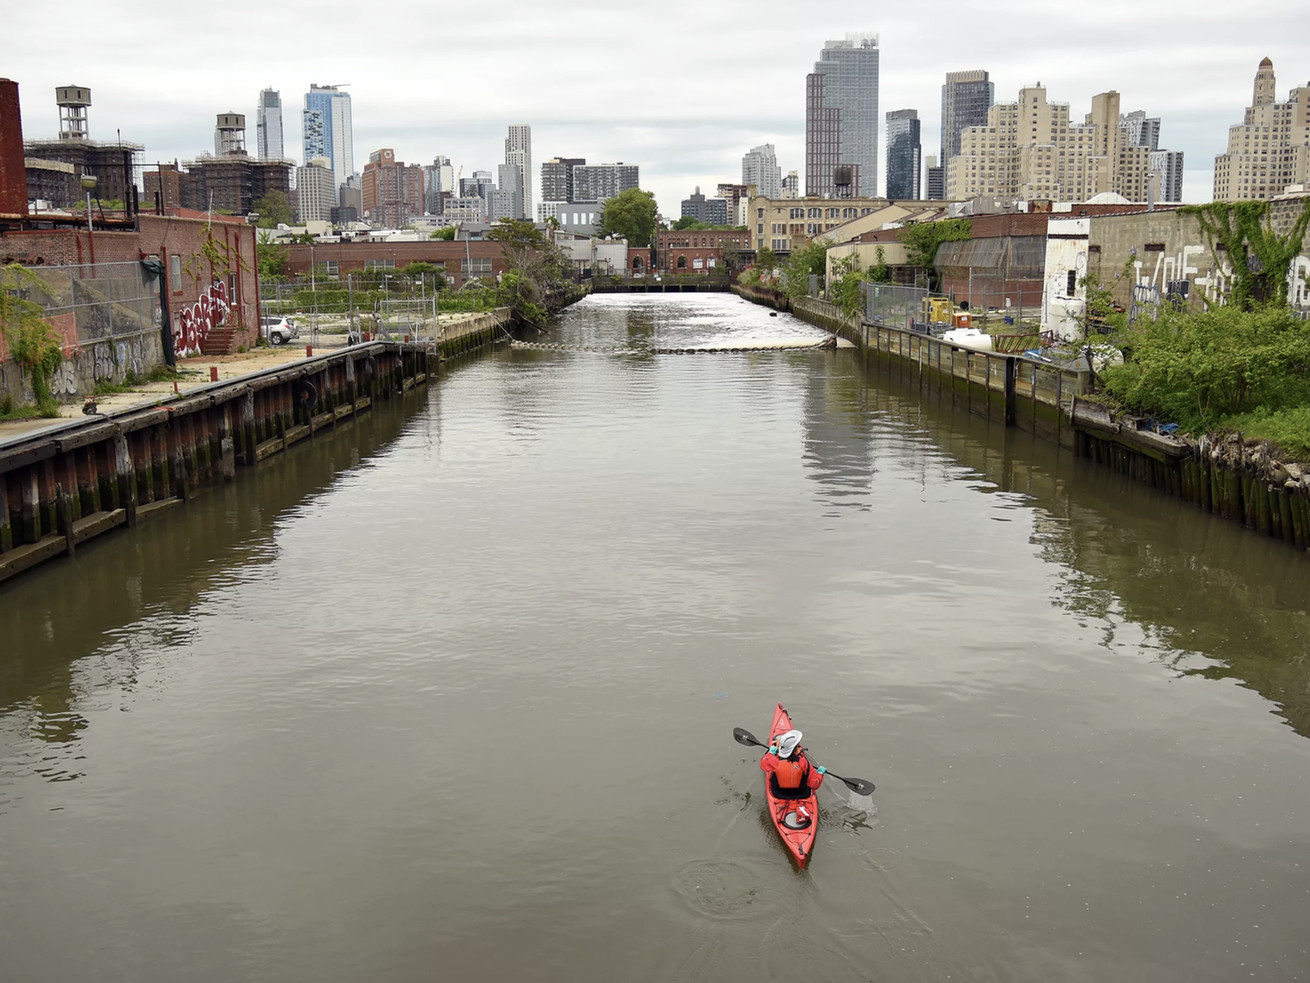 A kayaker paddles in the Gowanus canal, the banks of which are a major neighborhood rezoning has been proposed by the city.